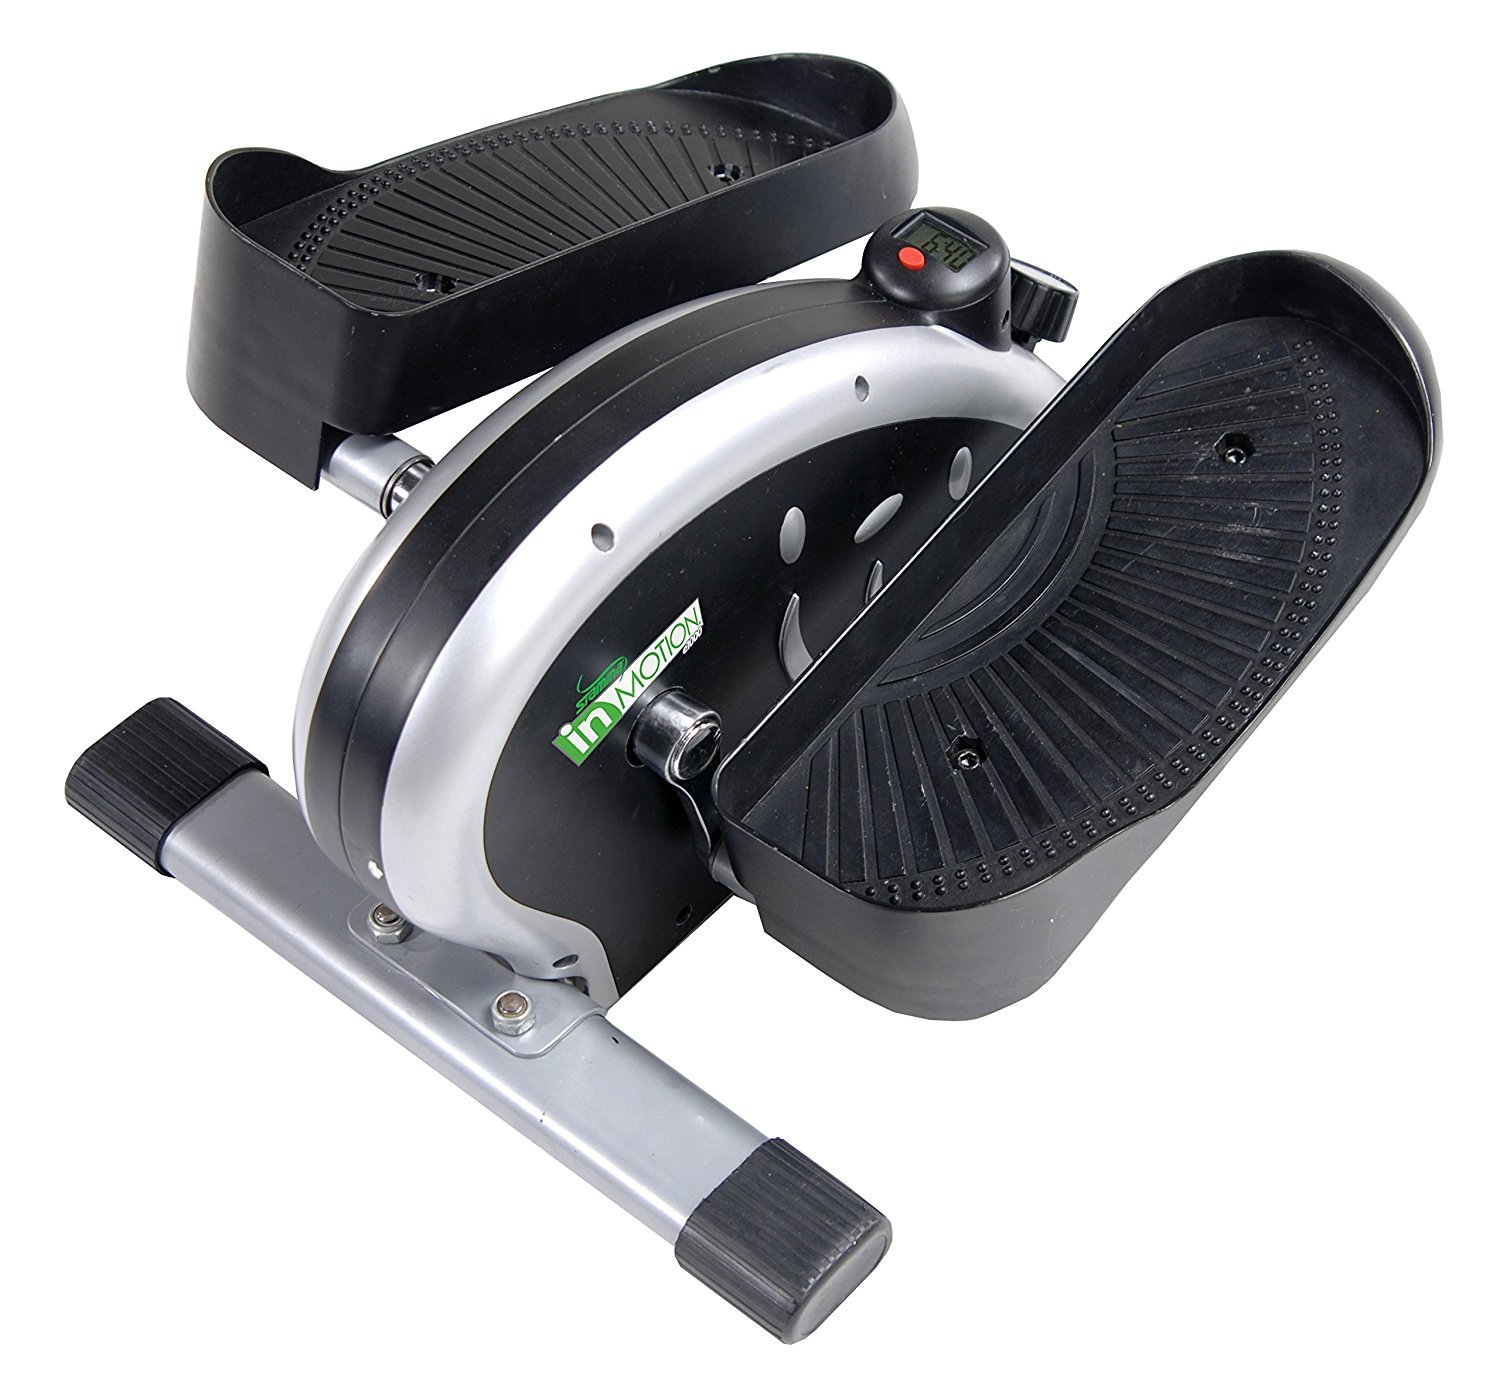 the Stamina In-Motion Elliptical is indicated here